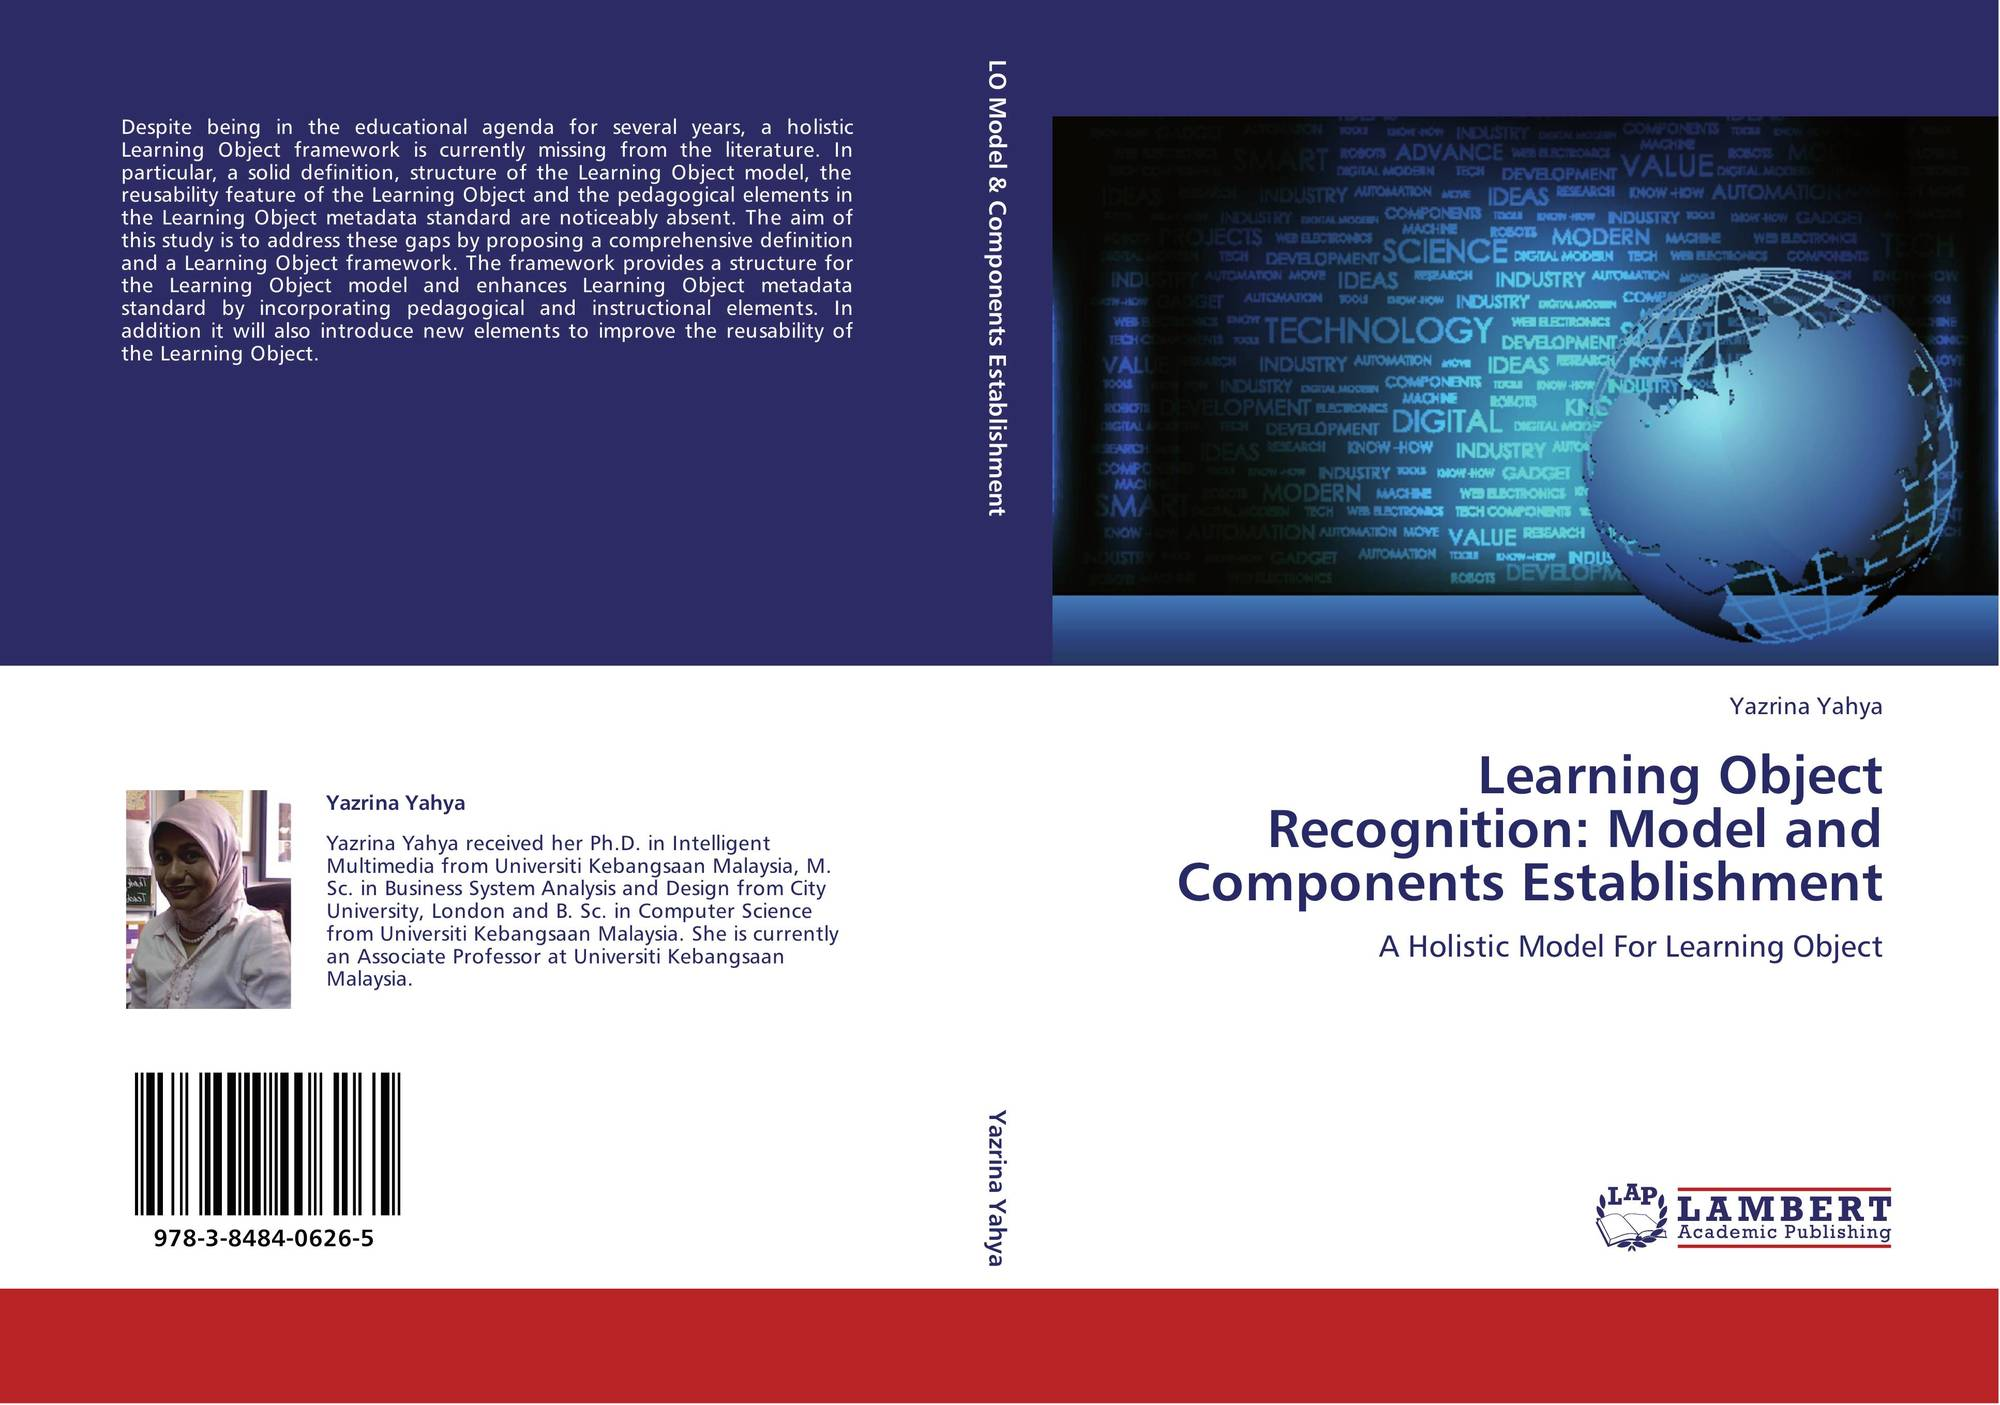 Learning Object Recognition Model And Components Establishment 978 3 8484 0626 5 3848406268 9783848406265 By Yazrina Yahya